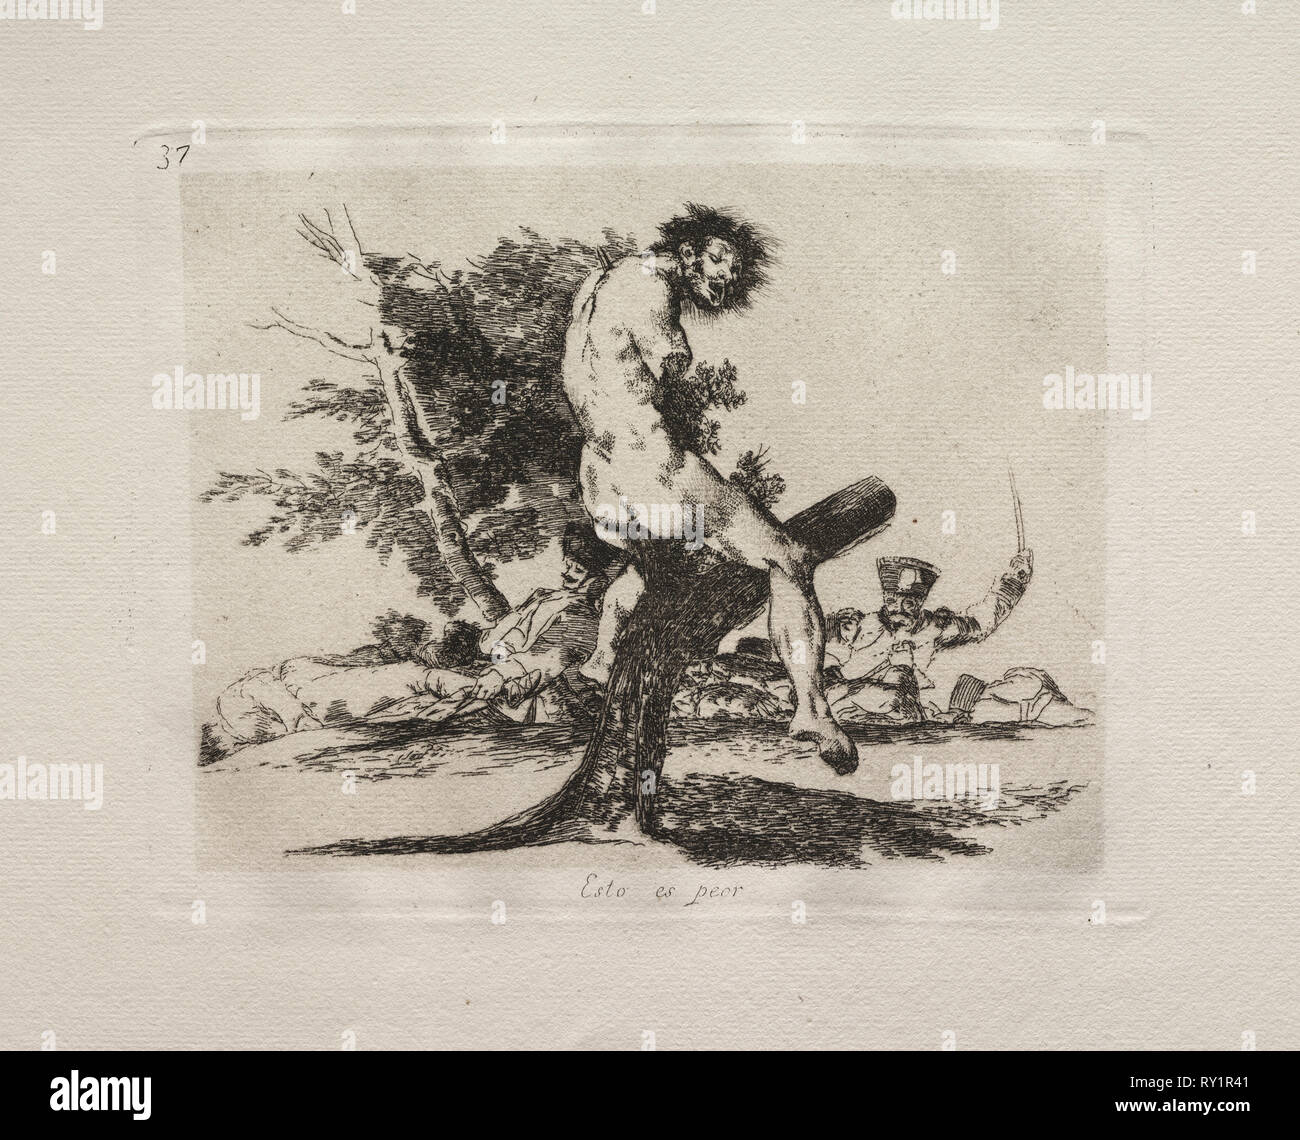 The Horrors of War:  This Is Worse. Francisco de Goya (Spanish, 1746-1828). Etching Stock Photo